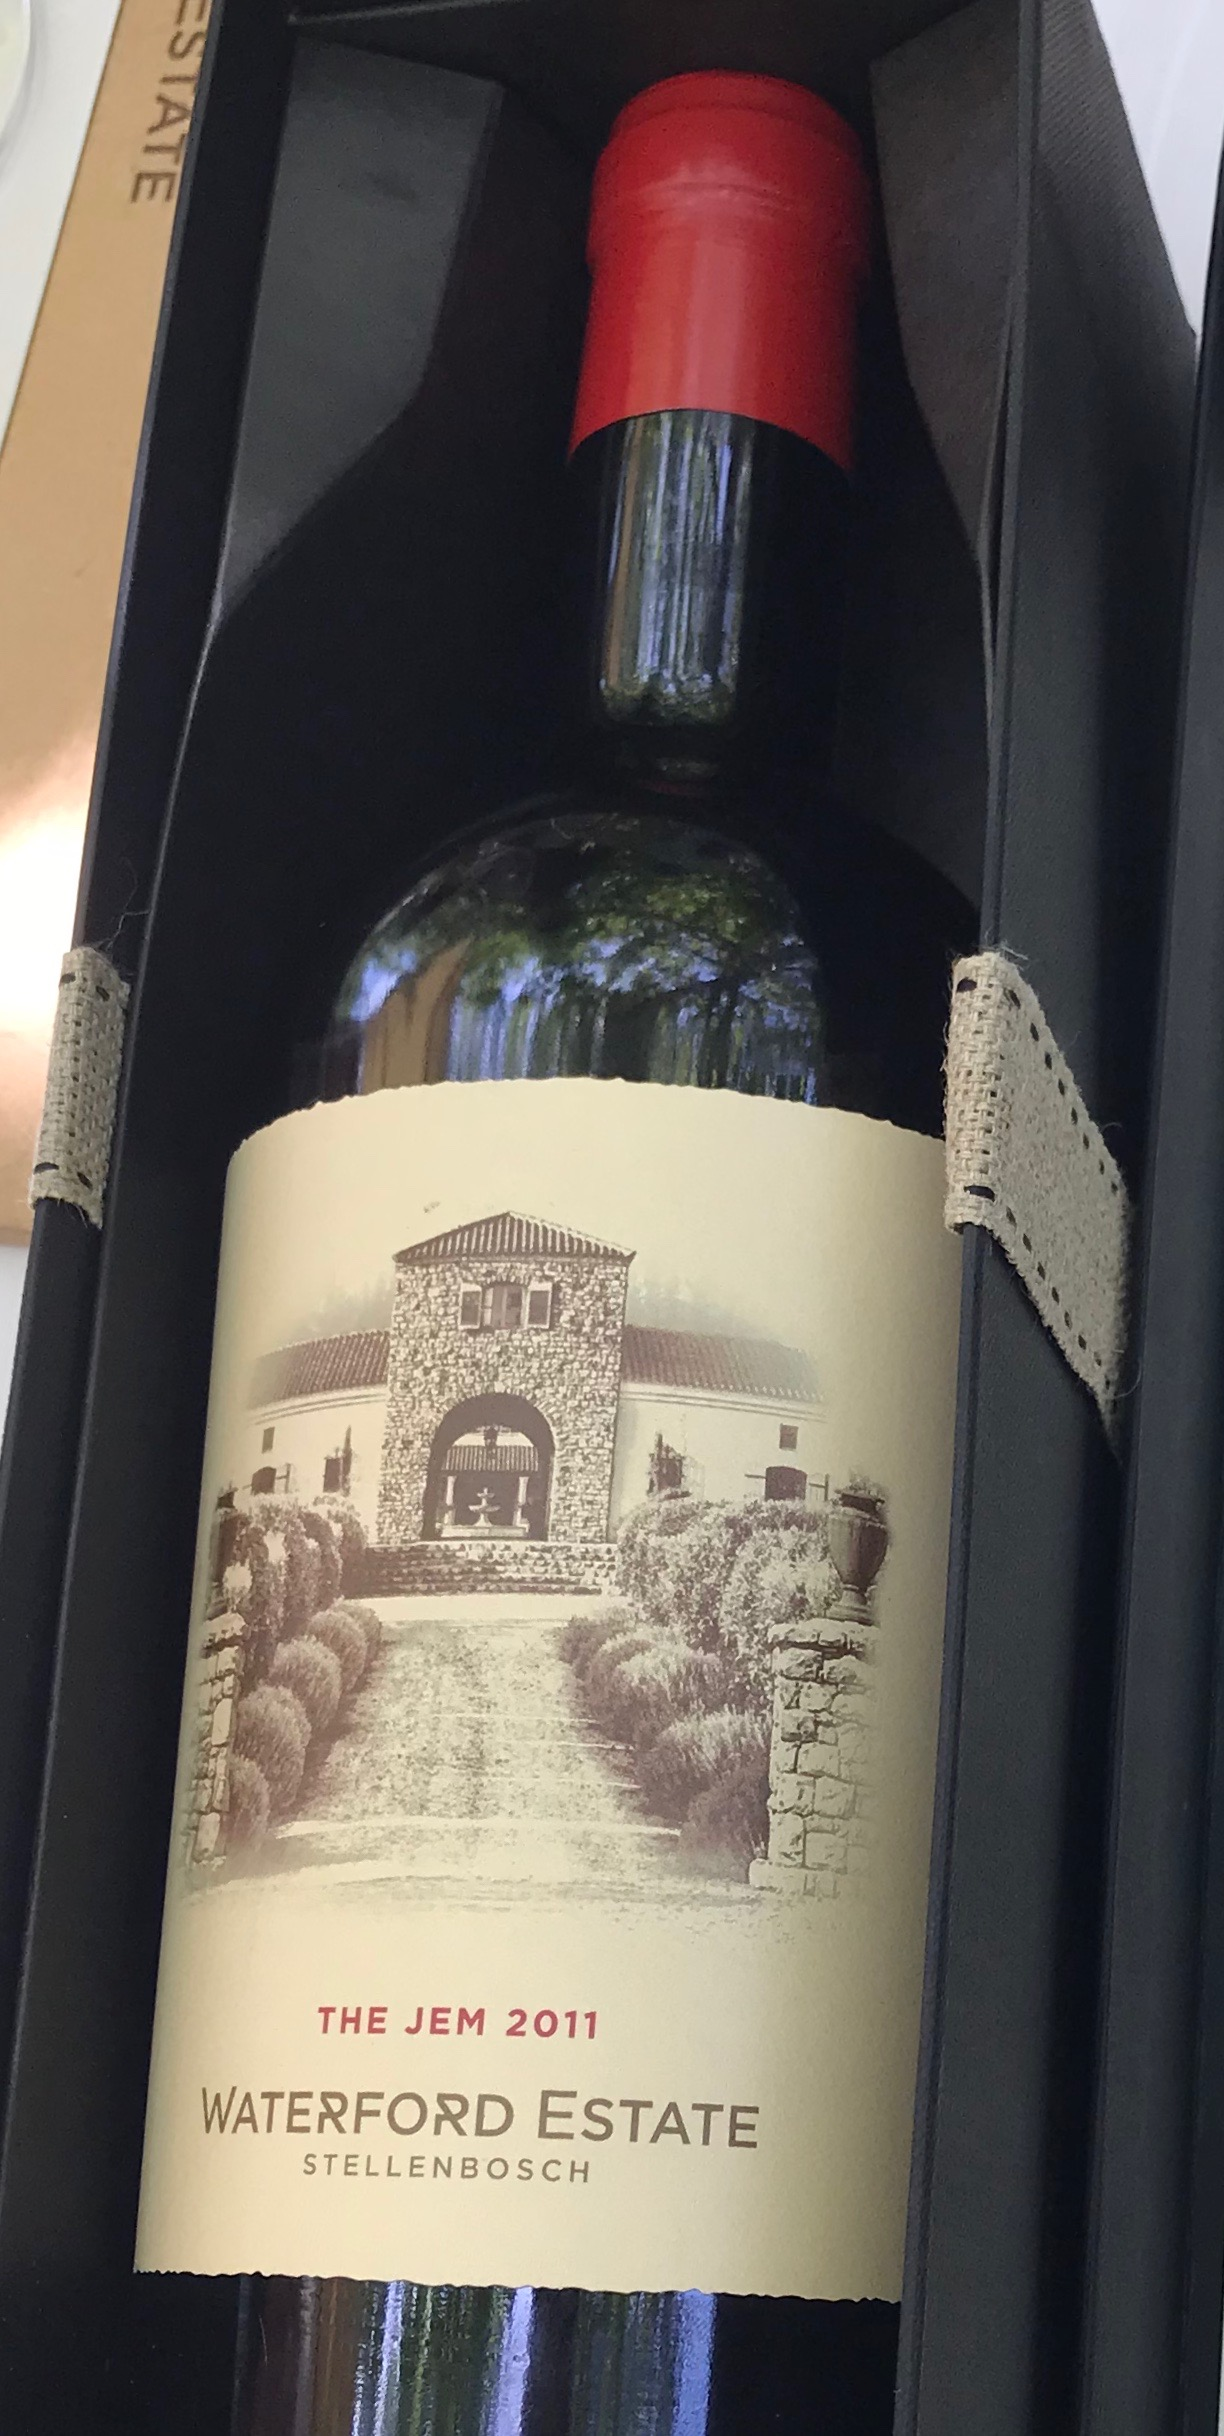 The Gem, Waterford's flagship wine, is dominated by Cabernet Sauvignon and blended wtih six other varieties. This full-bodied wine has aromatics of red and dark black fruits as well as spice notes. Its luscious fruit flavors were a perfect accompaniment to the dark chocolate.